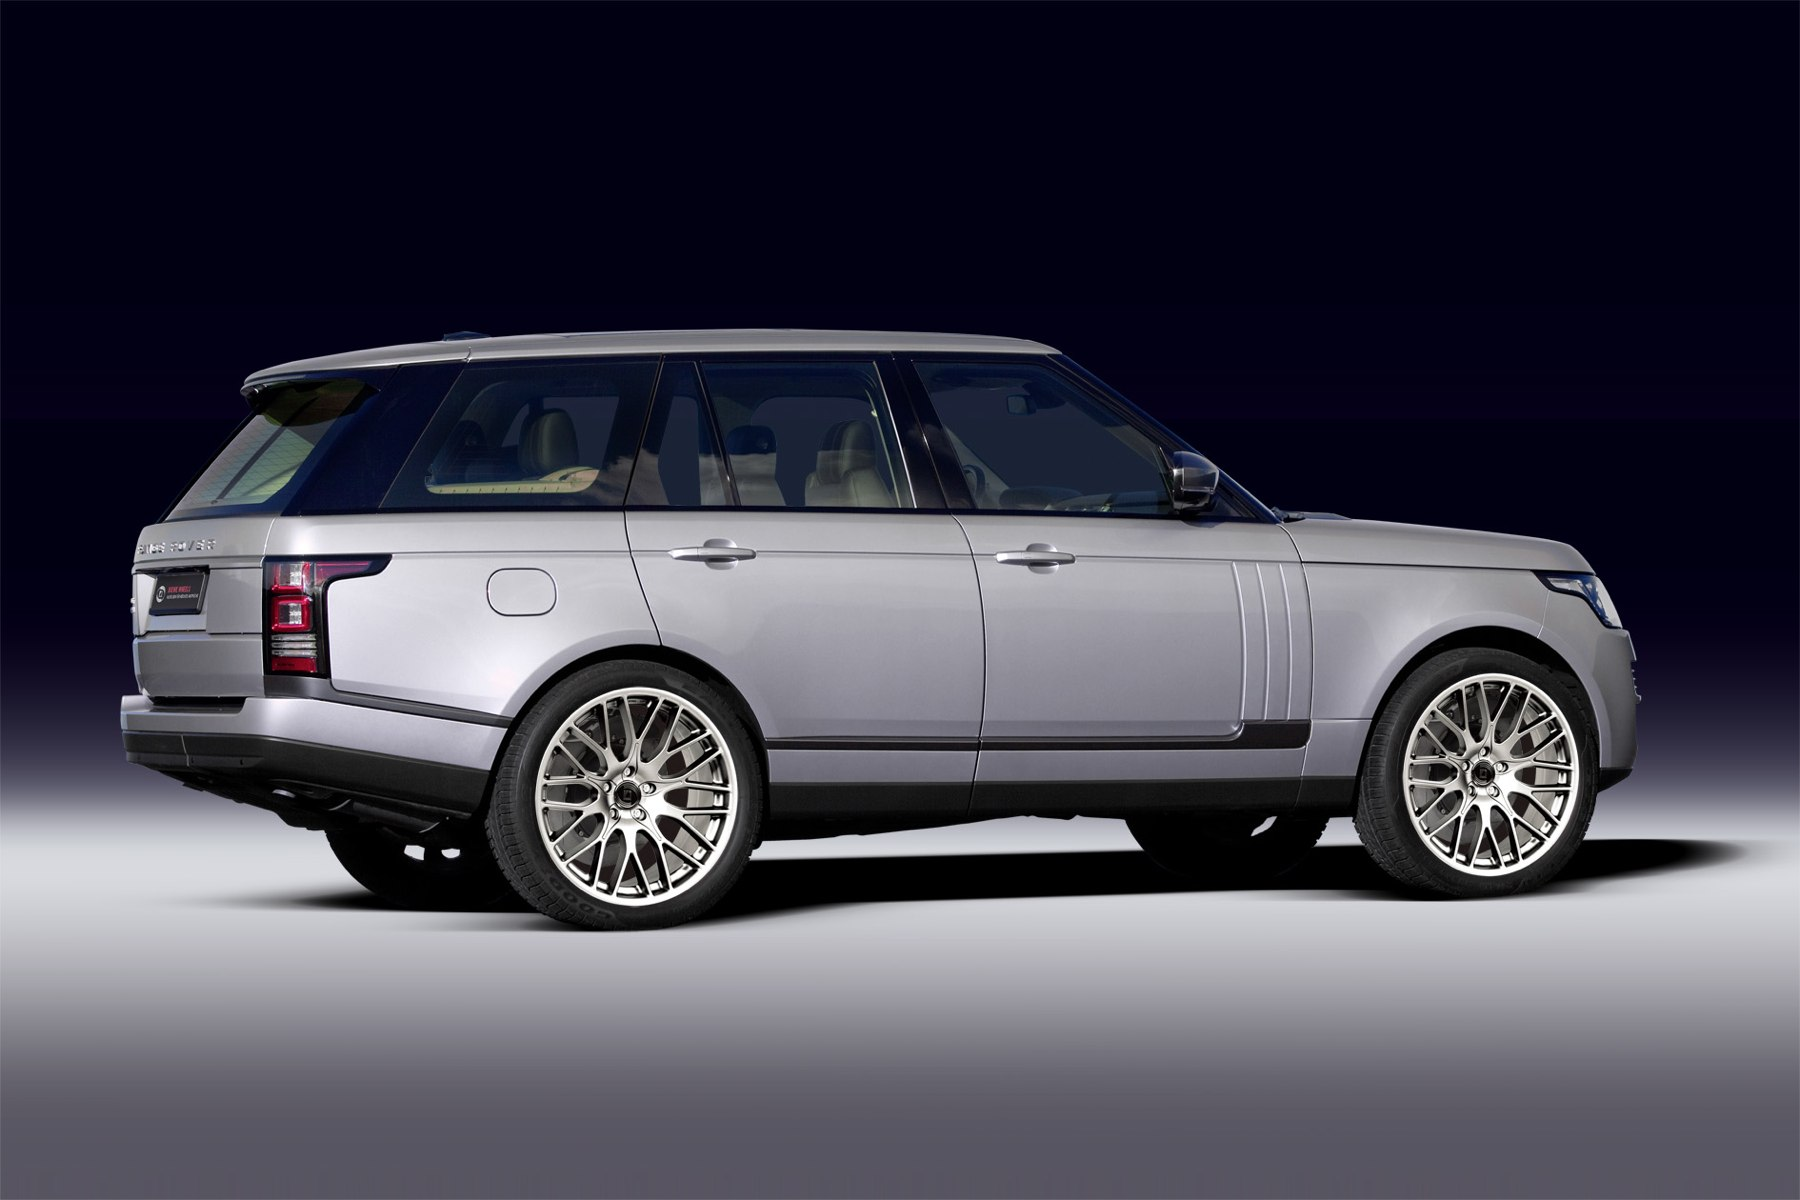 The Diewe Alloy Wheel Impatto For The New Range Rover